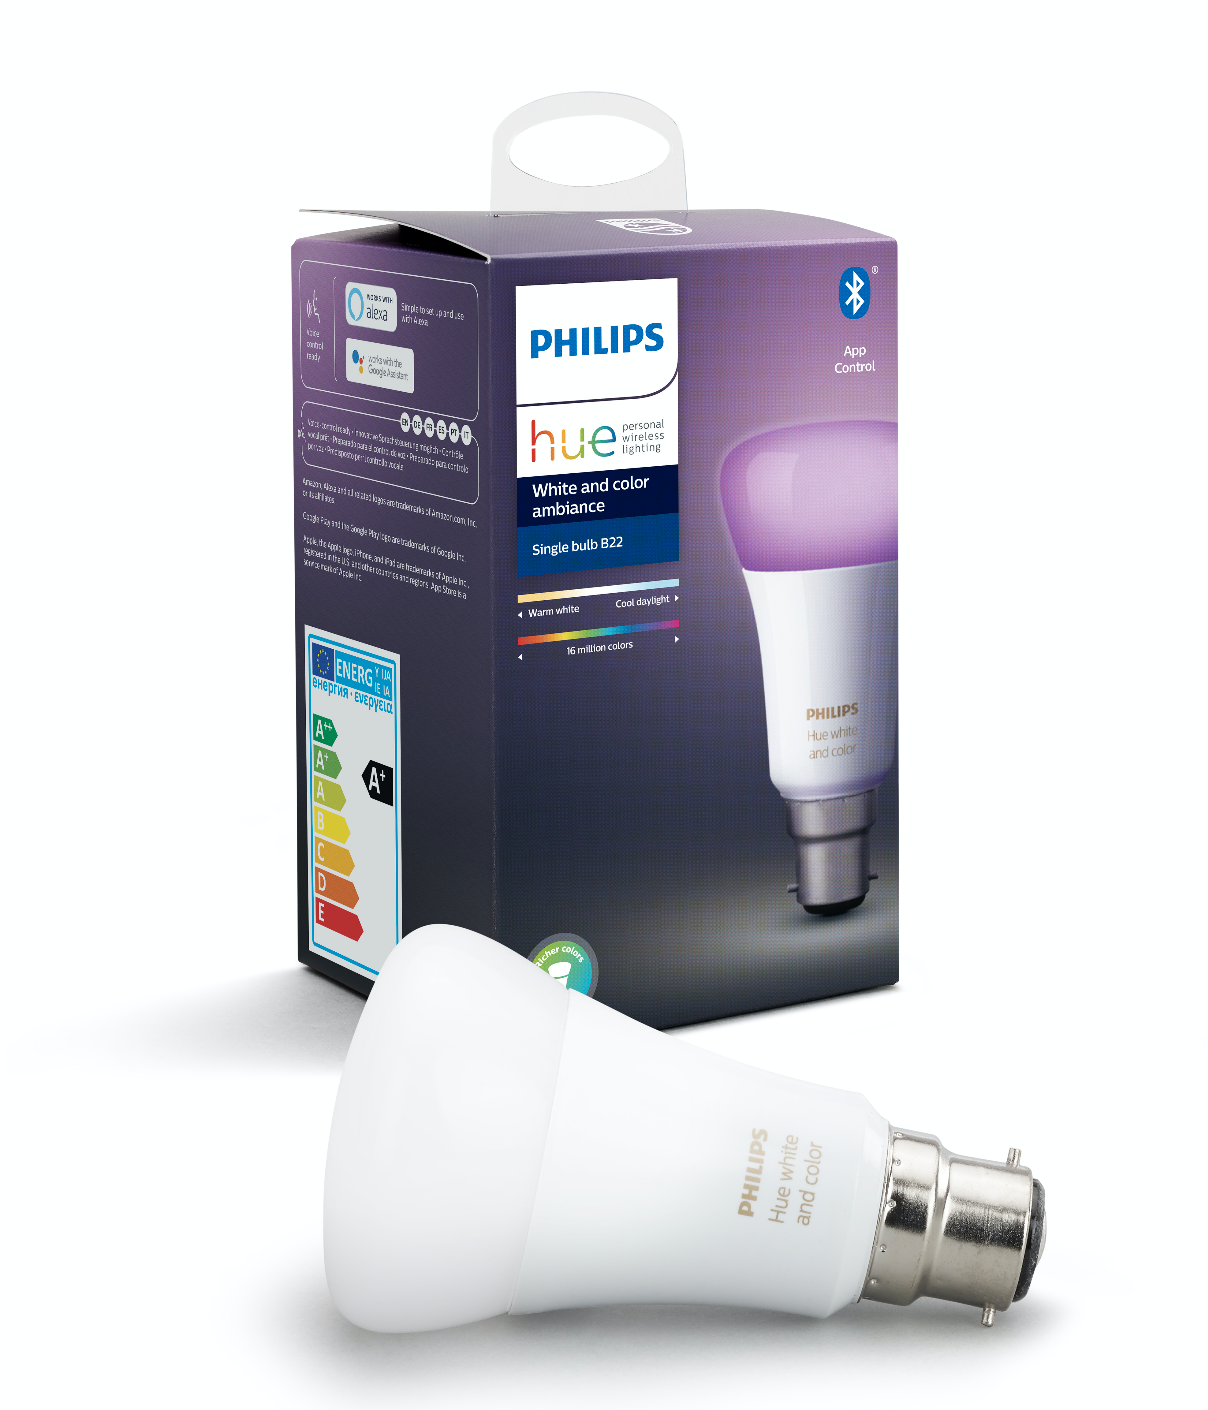 Philips Hue bulbs go bridge-less with new Bluetooth lights